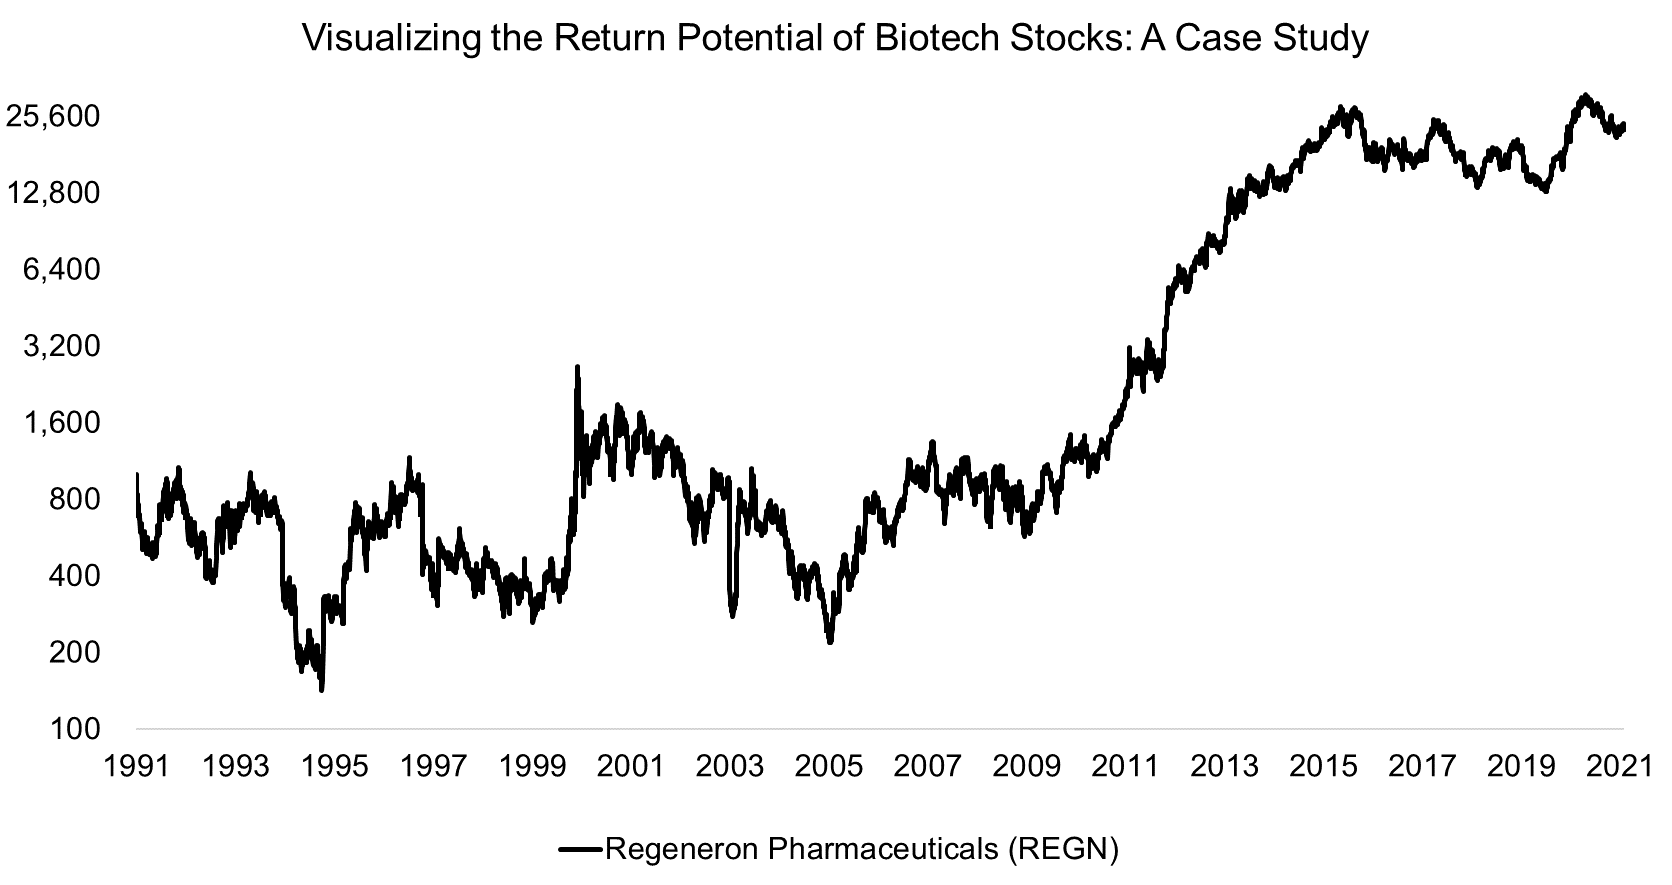 Visualizing the Return Potential of Biotech Stocks A Case Study